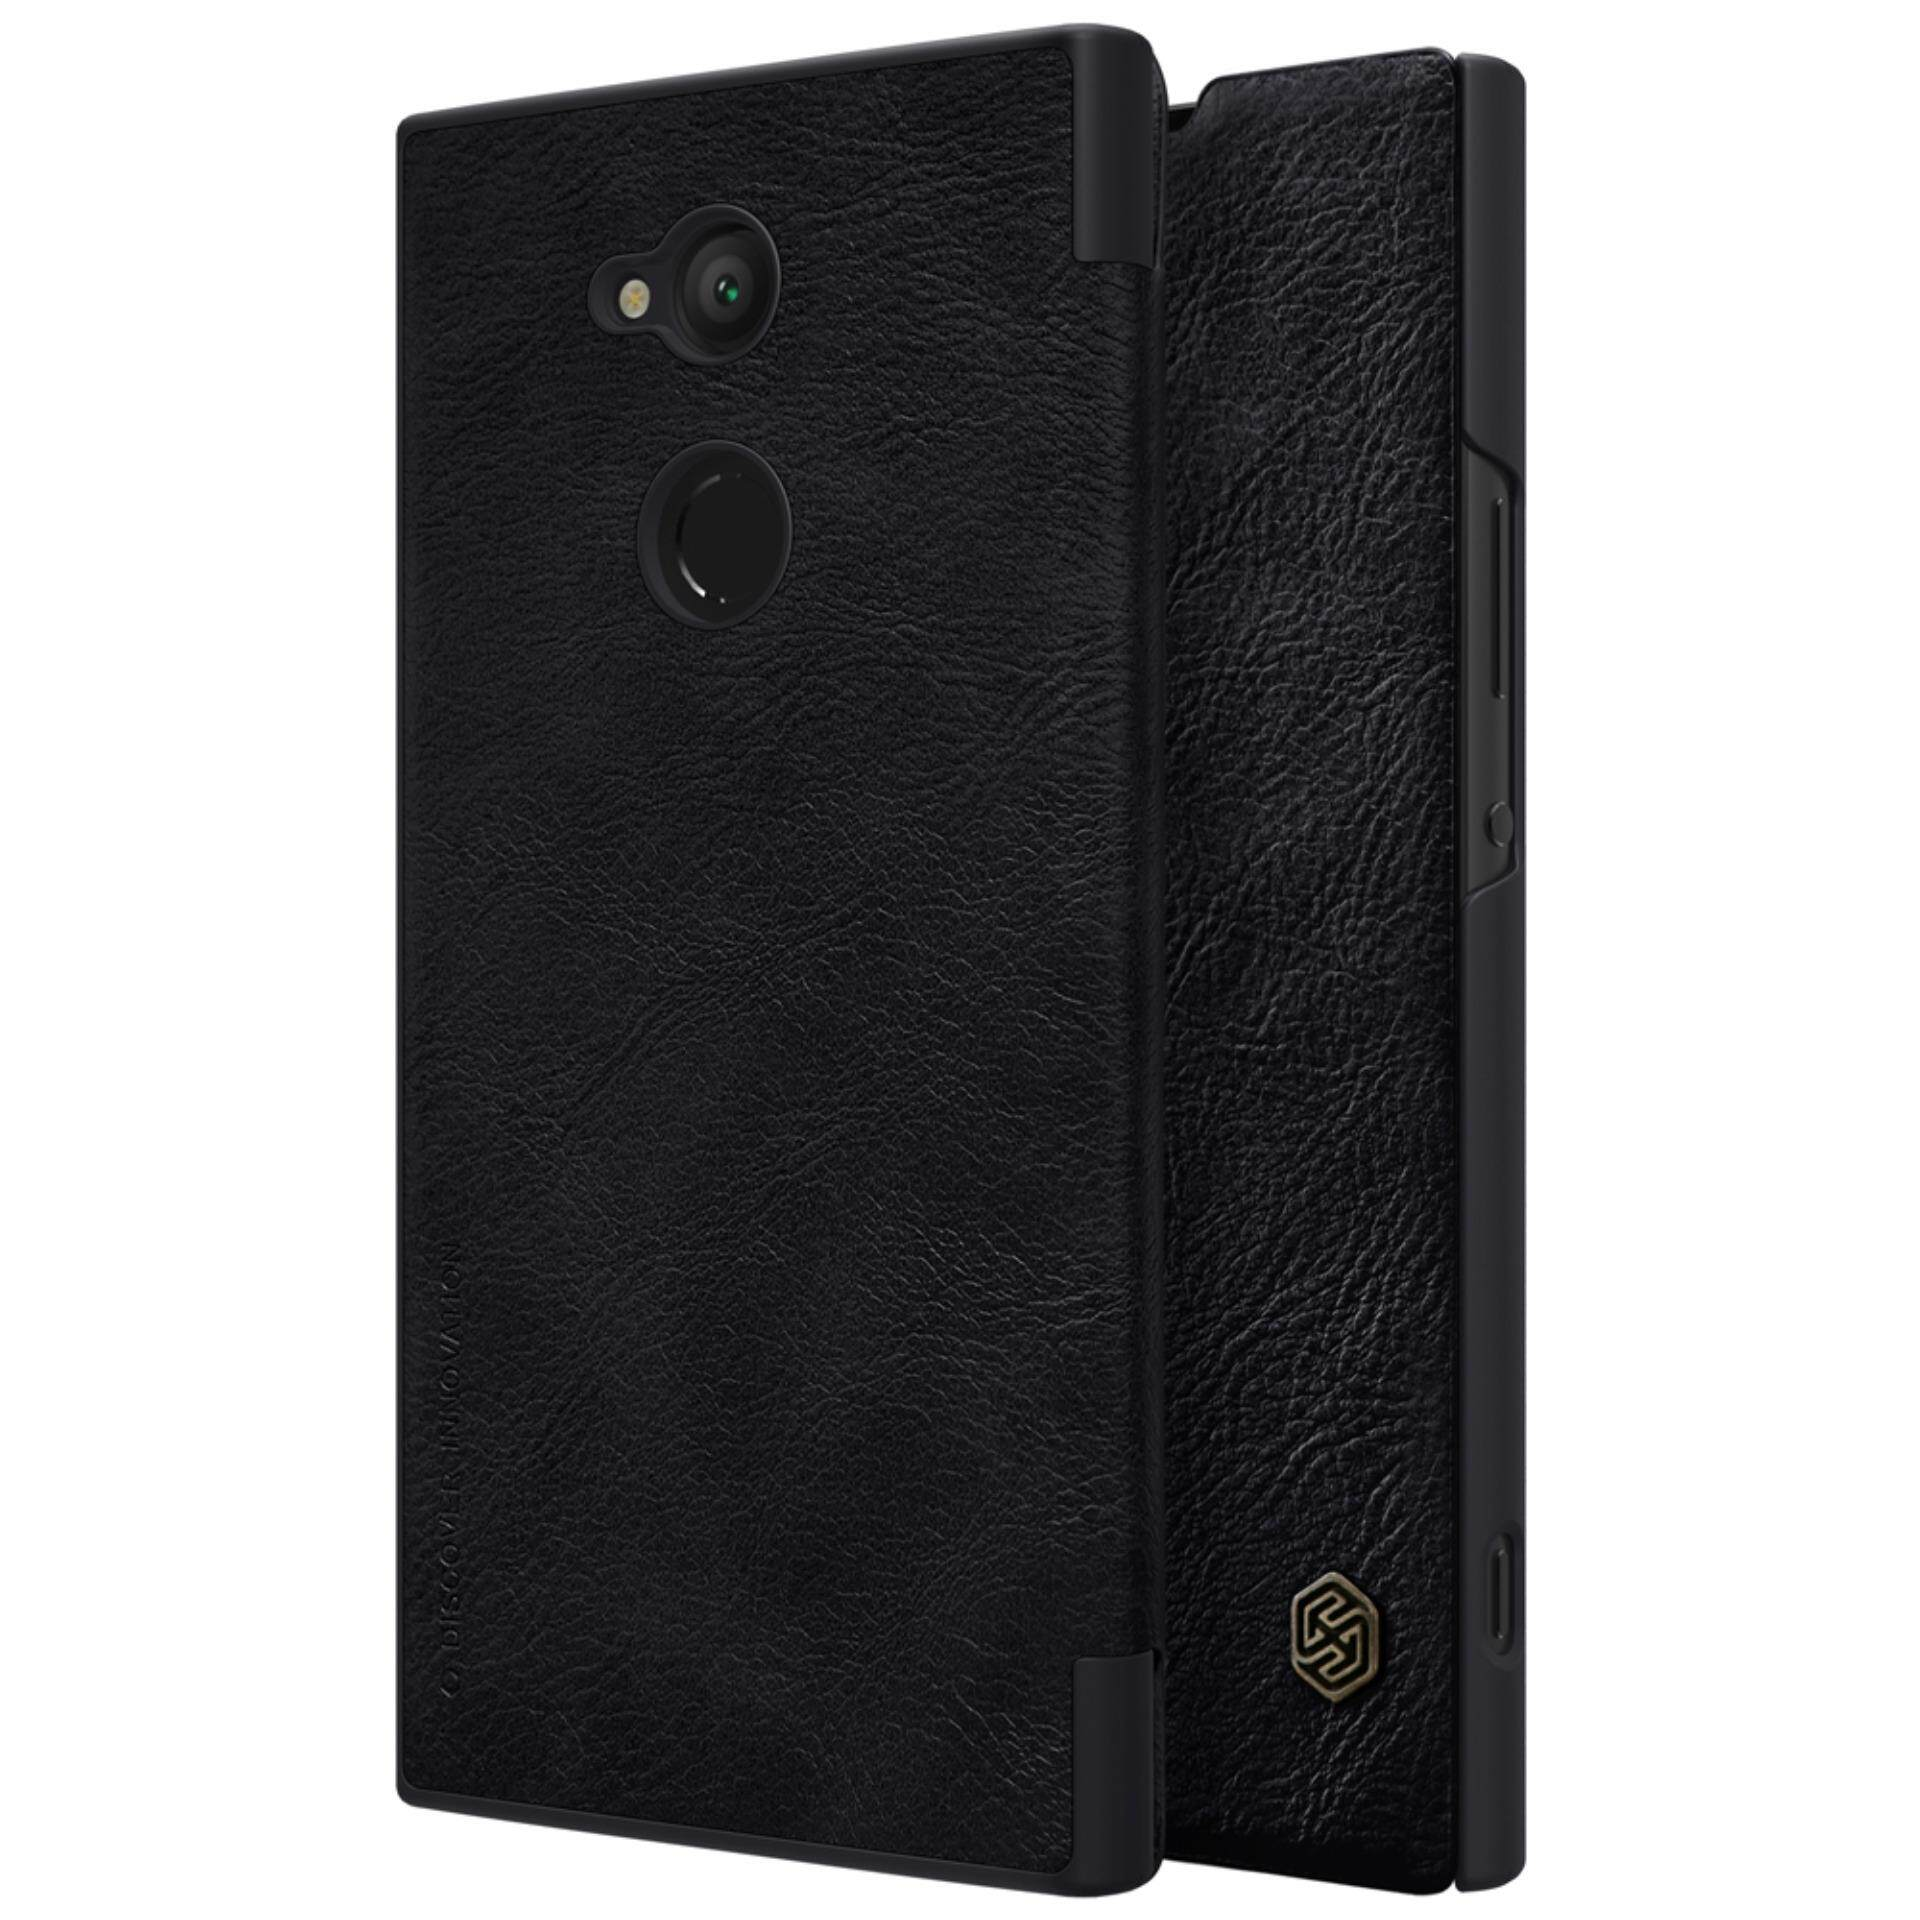 Sony Xperia XA2 Ultra Case Nillkin Qin Customized Ultra Thin Inside Card Slot Flip Up Leather Case Protective Shell Cover for Sony Xperia XA2 Ultra (Black) - intl